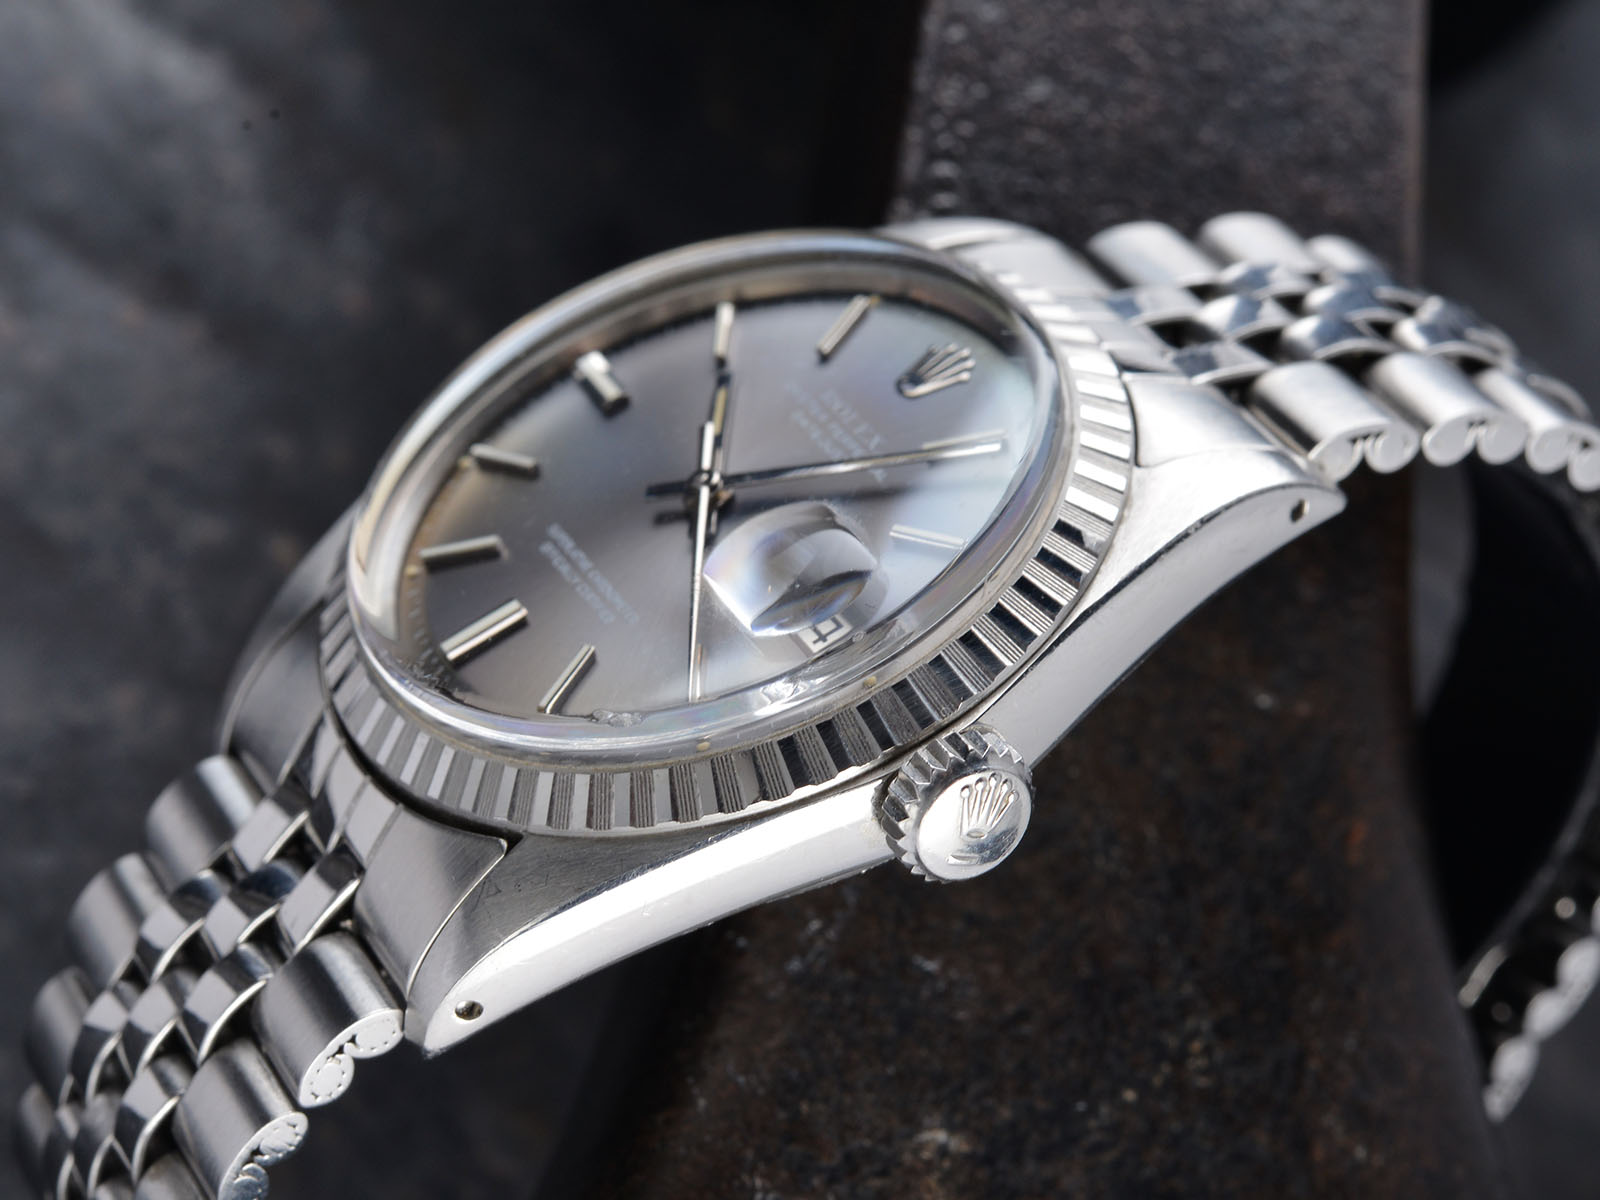 Fedex Box Prices >> ROLEX 1603 DATEJUST GREY DIAL 1972 - Bulang and Sons